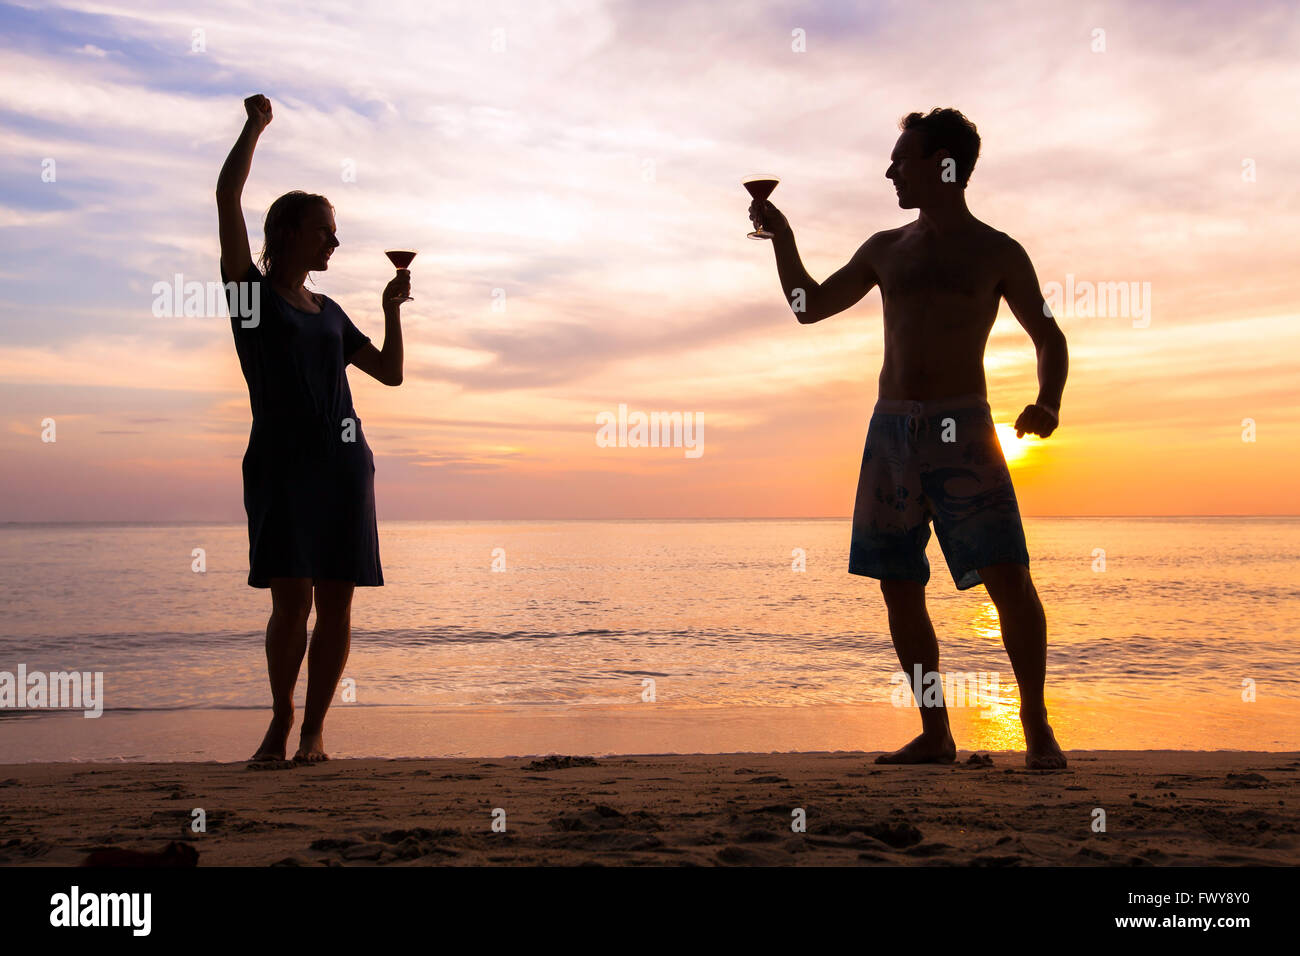 beach festival or party with friends, joyful happy people celebrating life, couple dancing with cocktails - Stock Image